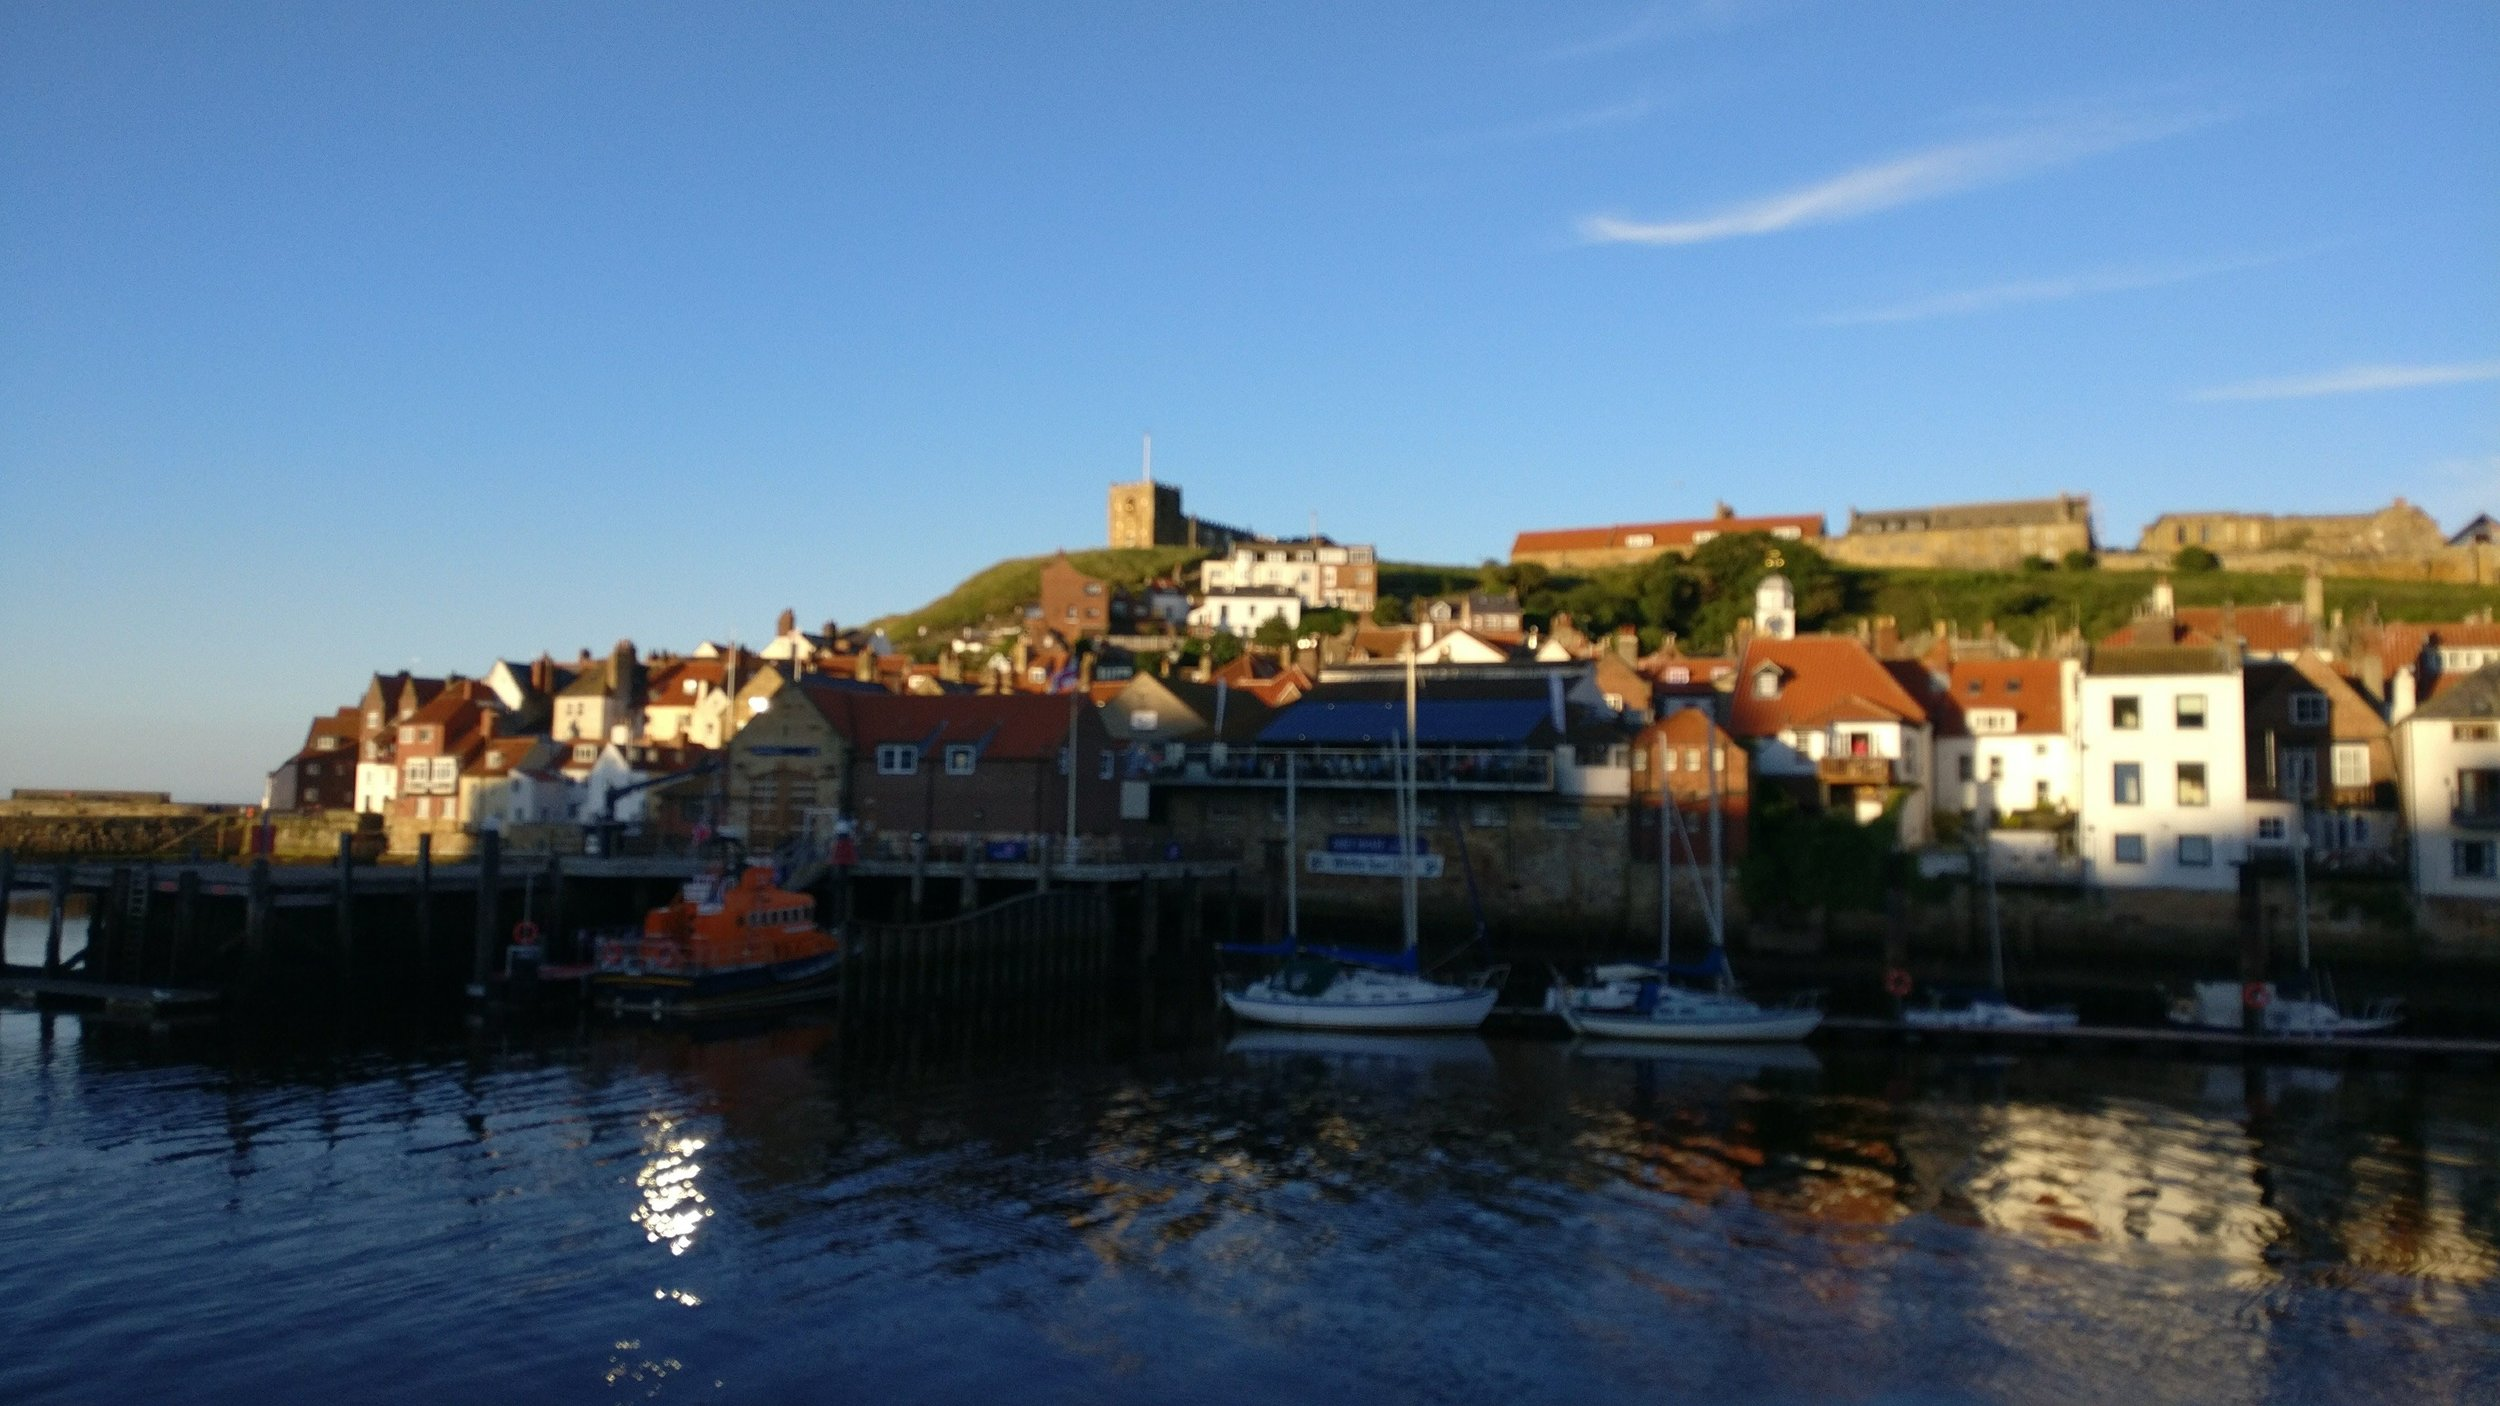 Whitby from the Quayside